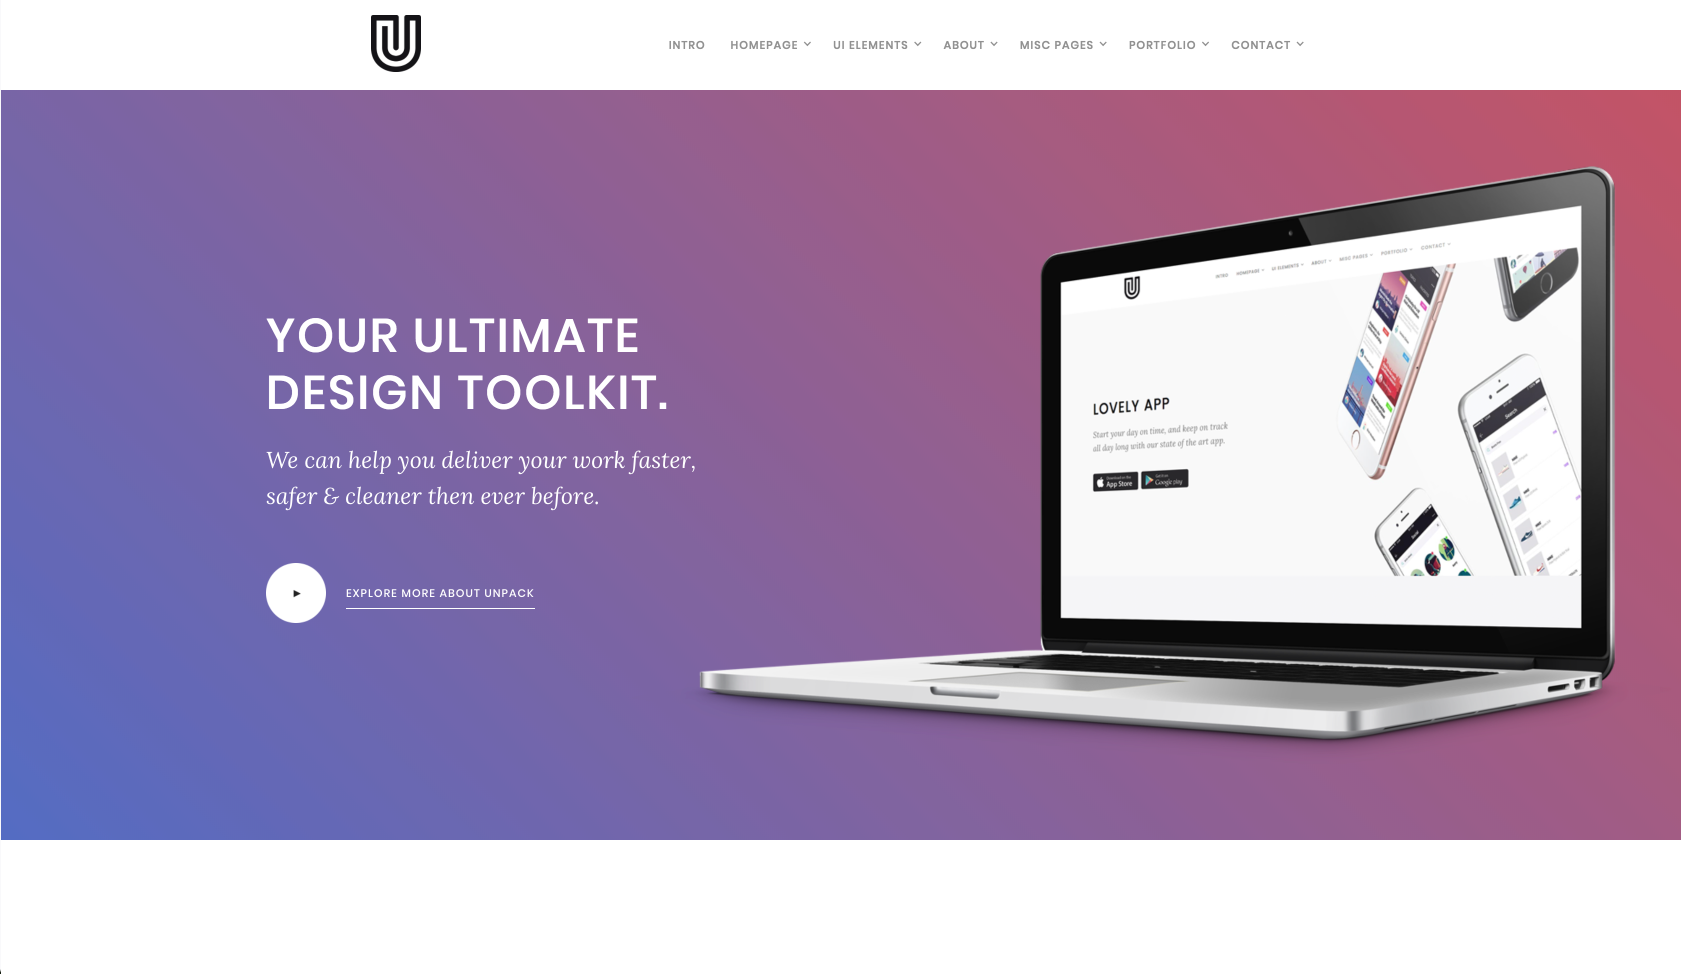 Homepage of a Webflow template called Unpack.